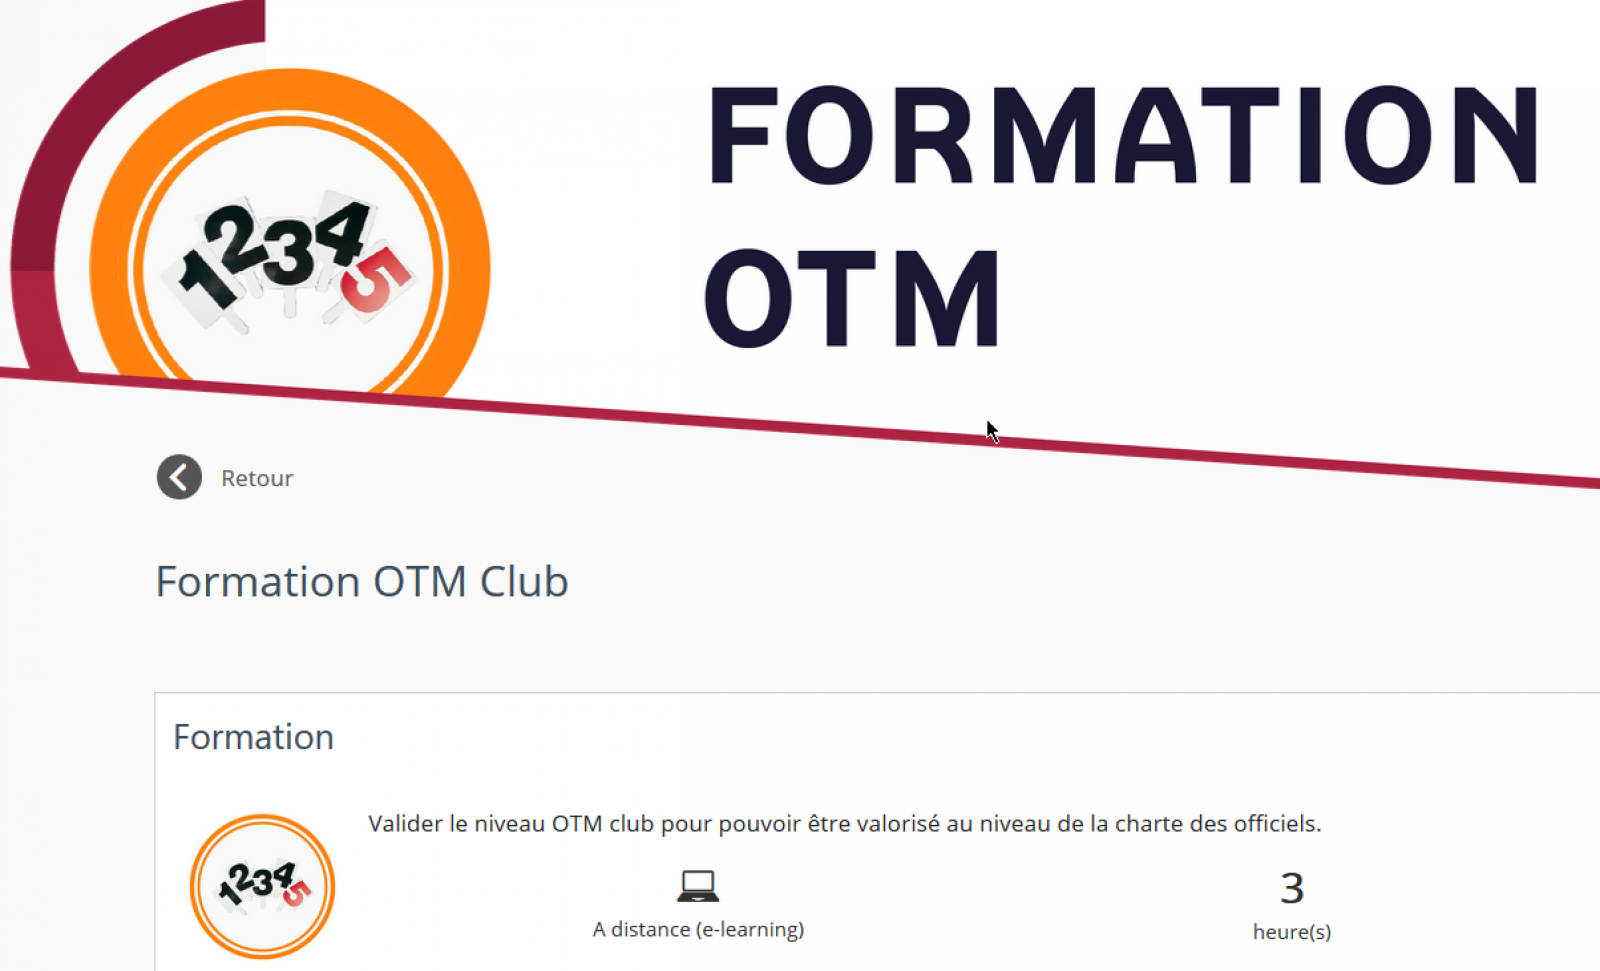 Formation OTM CLUB